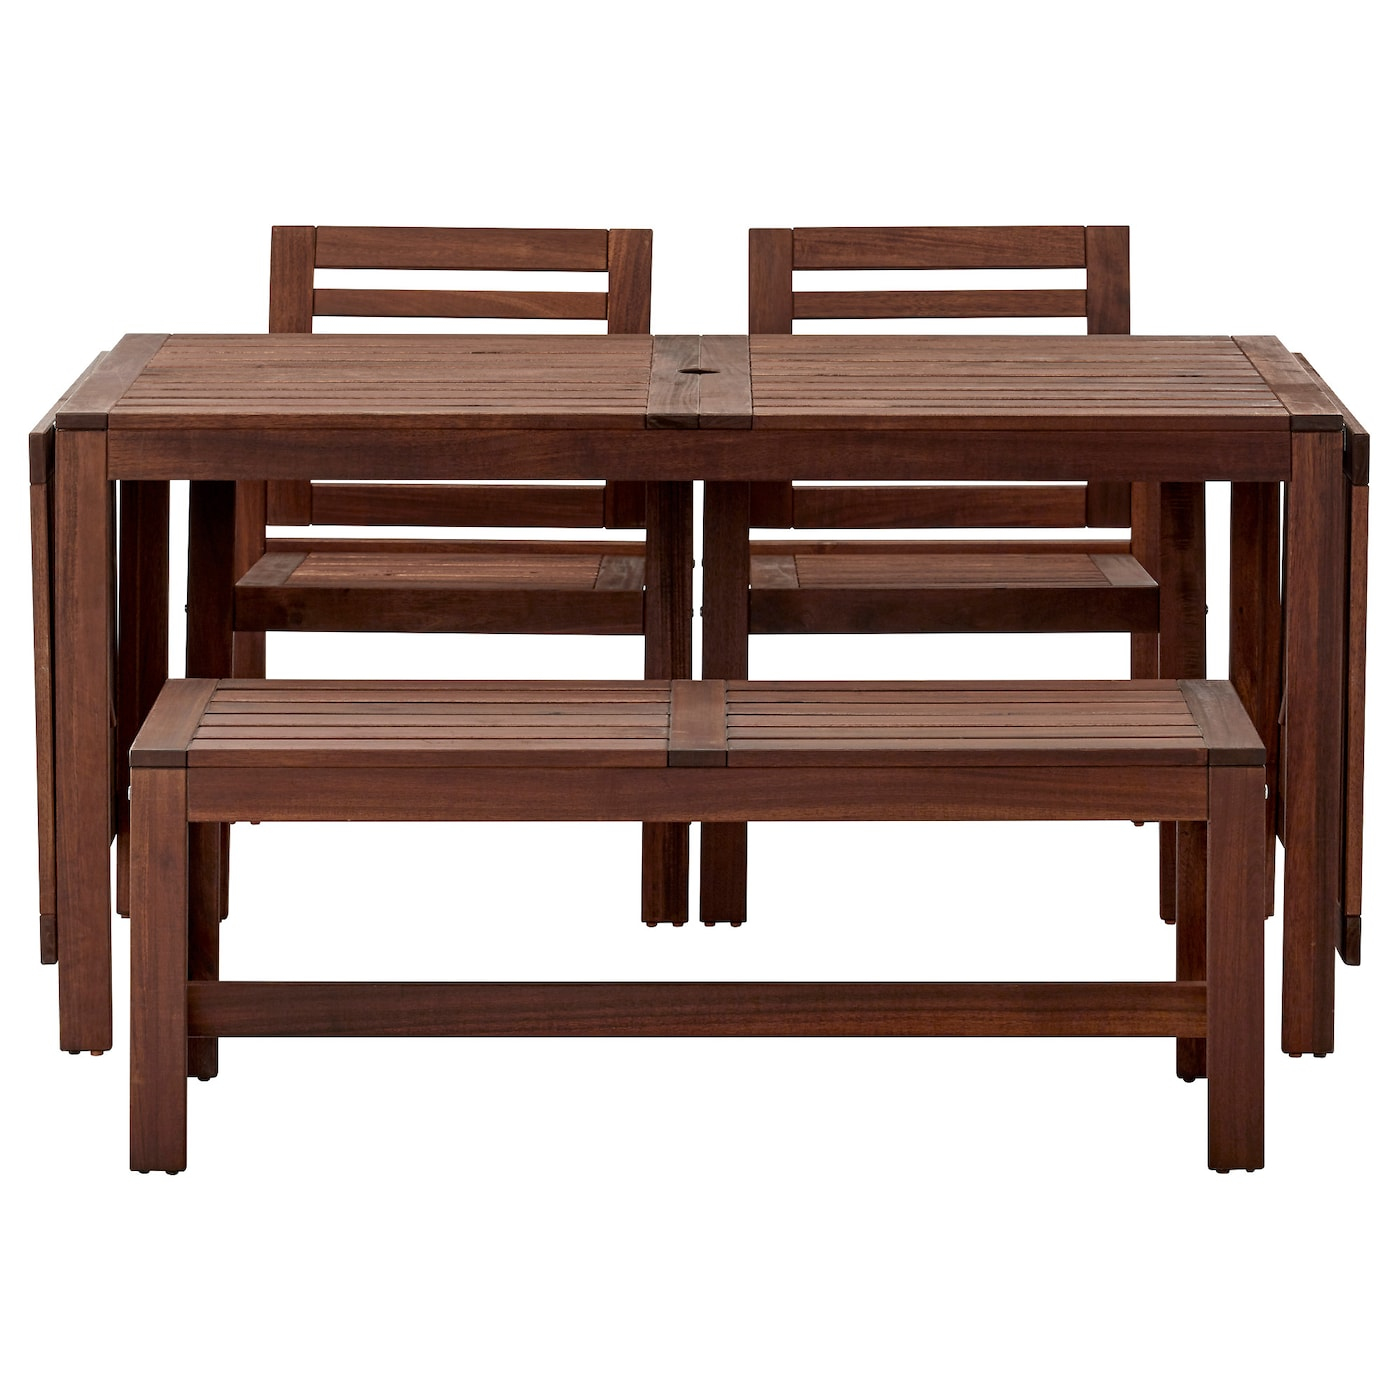 Pplar table 2 chrs w armr bench outdoor brown stained ikea for Outdoor side tables ikea